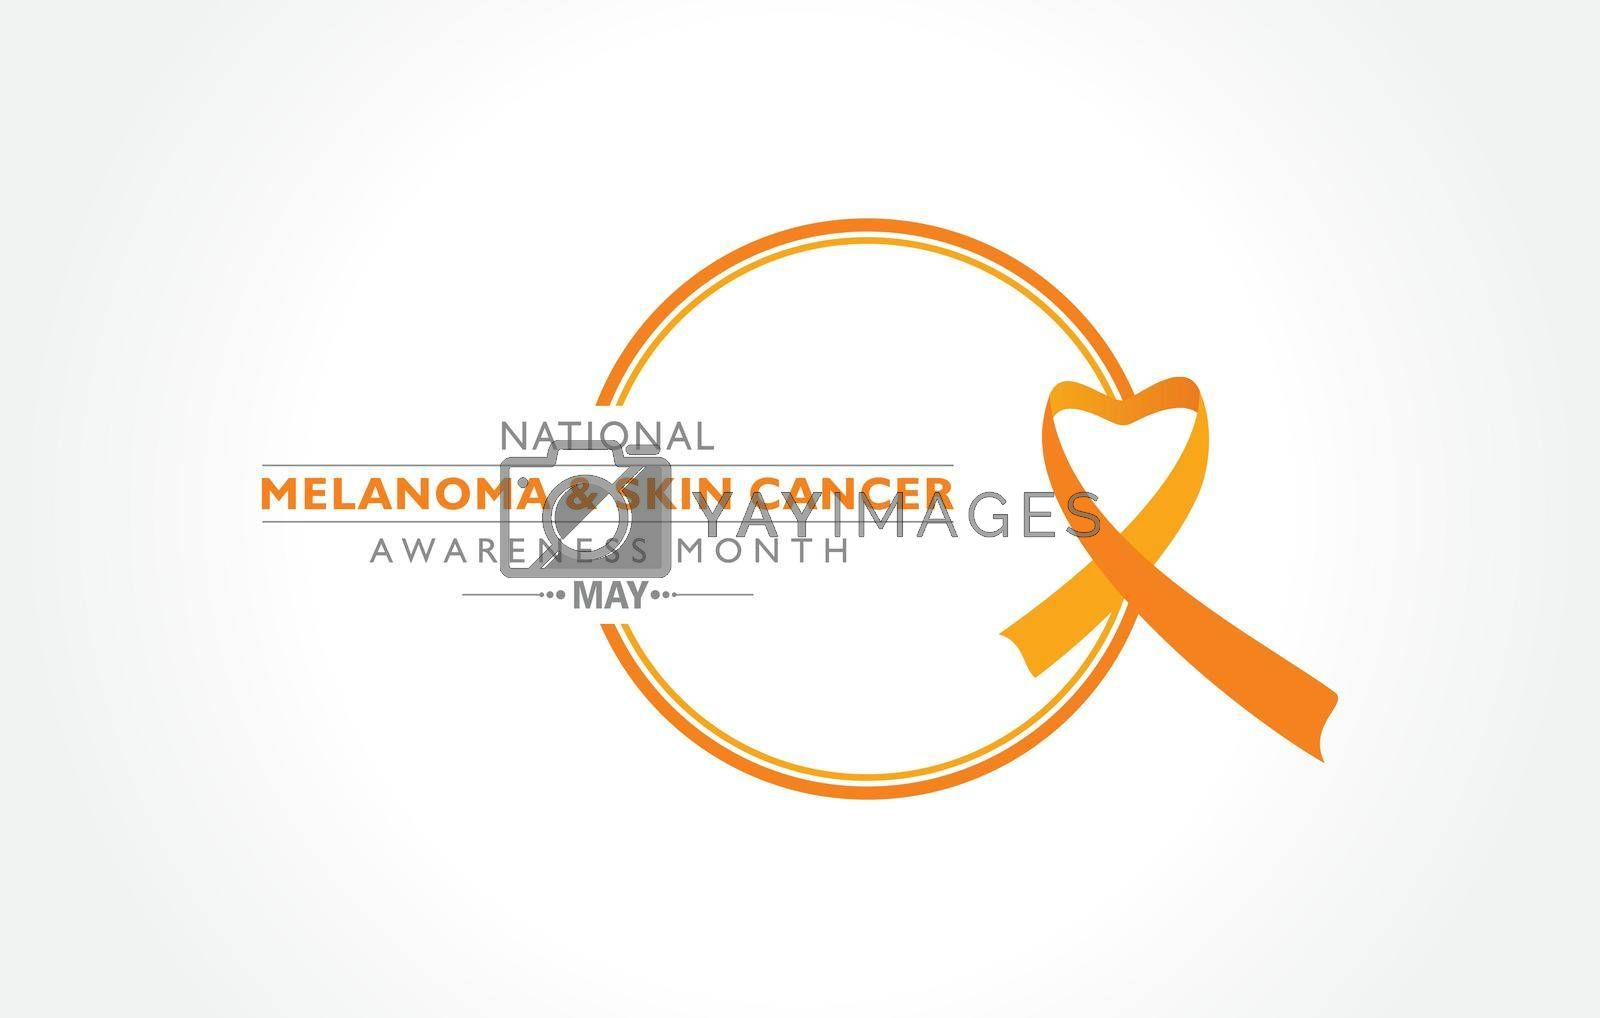 Royalty free image of Melanoma and Skin Cancer Awareness Month observed in May. by graphicsdunia4you